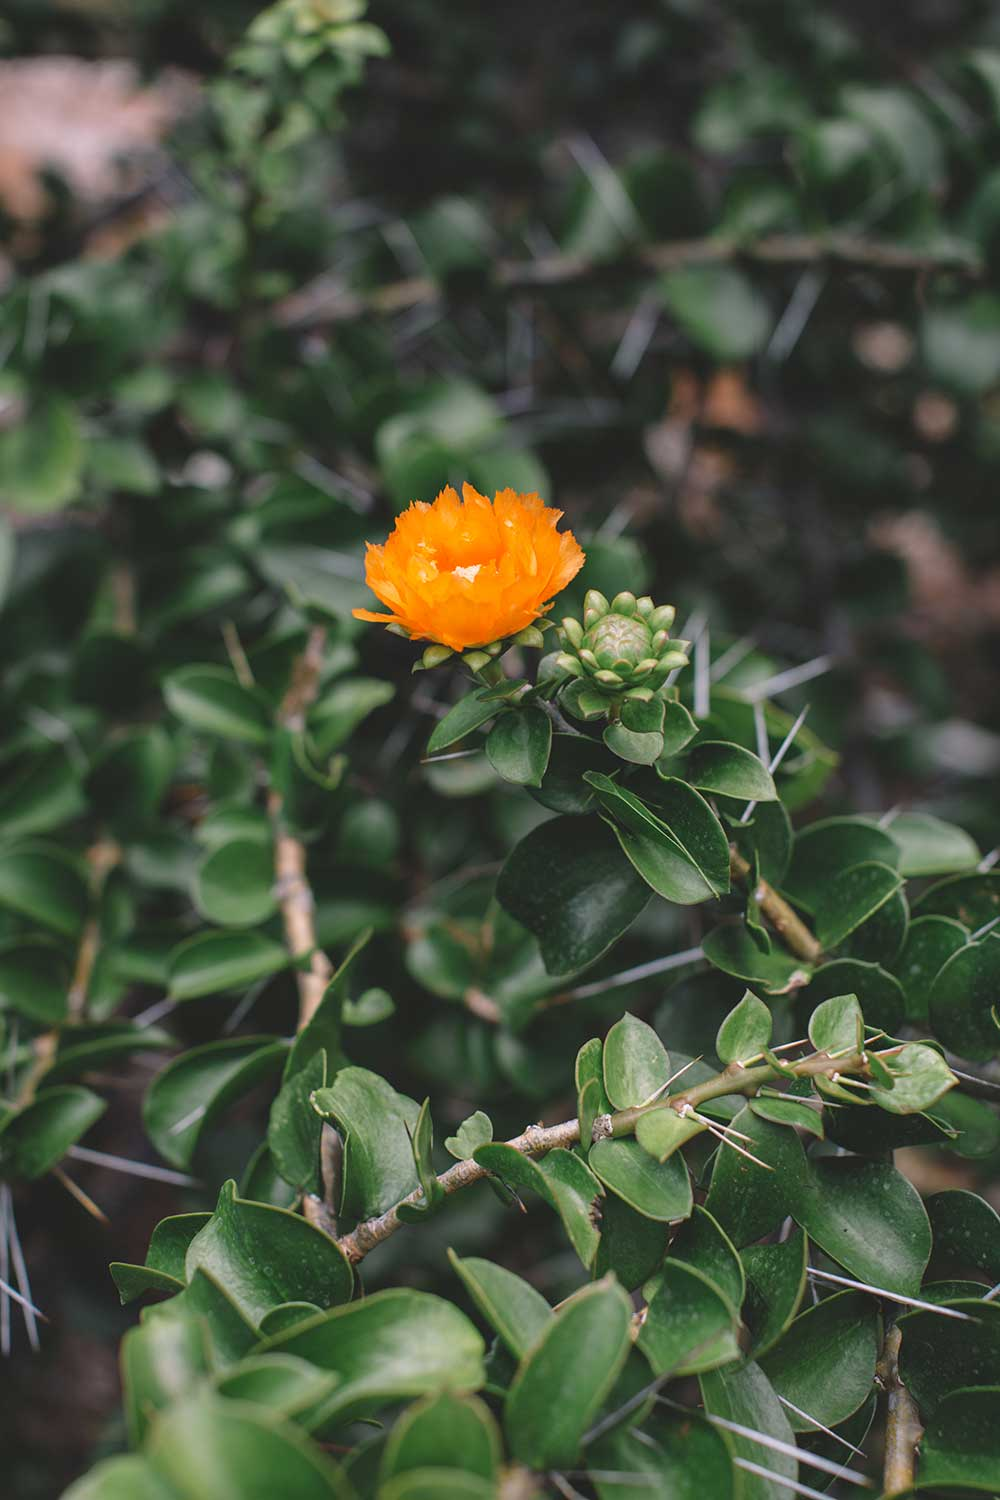 Small orange flower blooms in a sea of green leaves